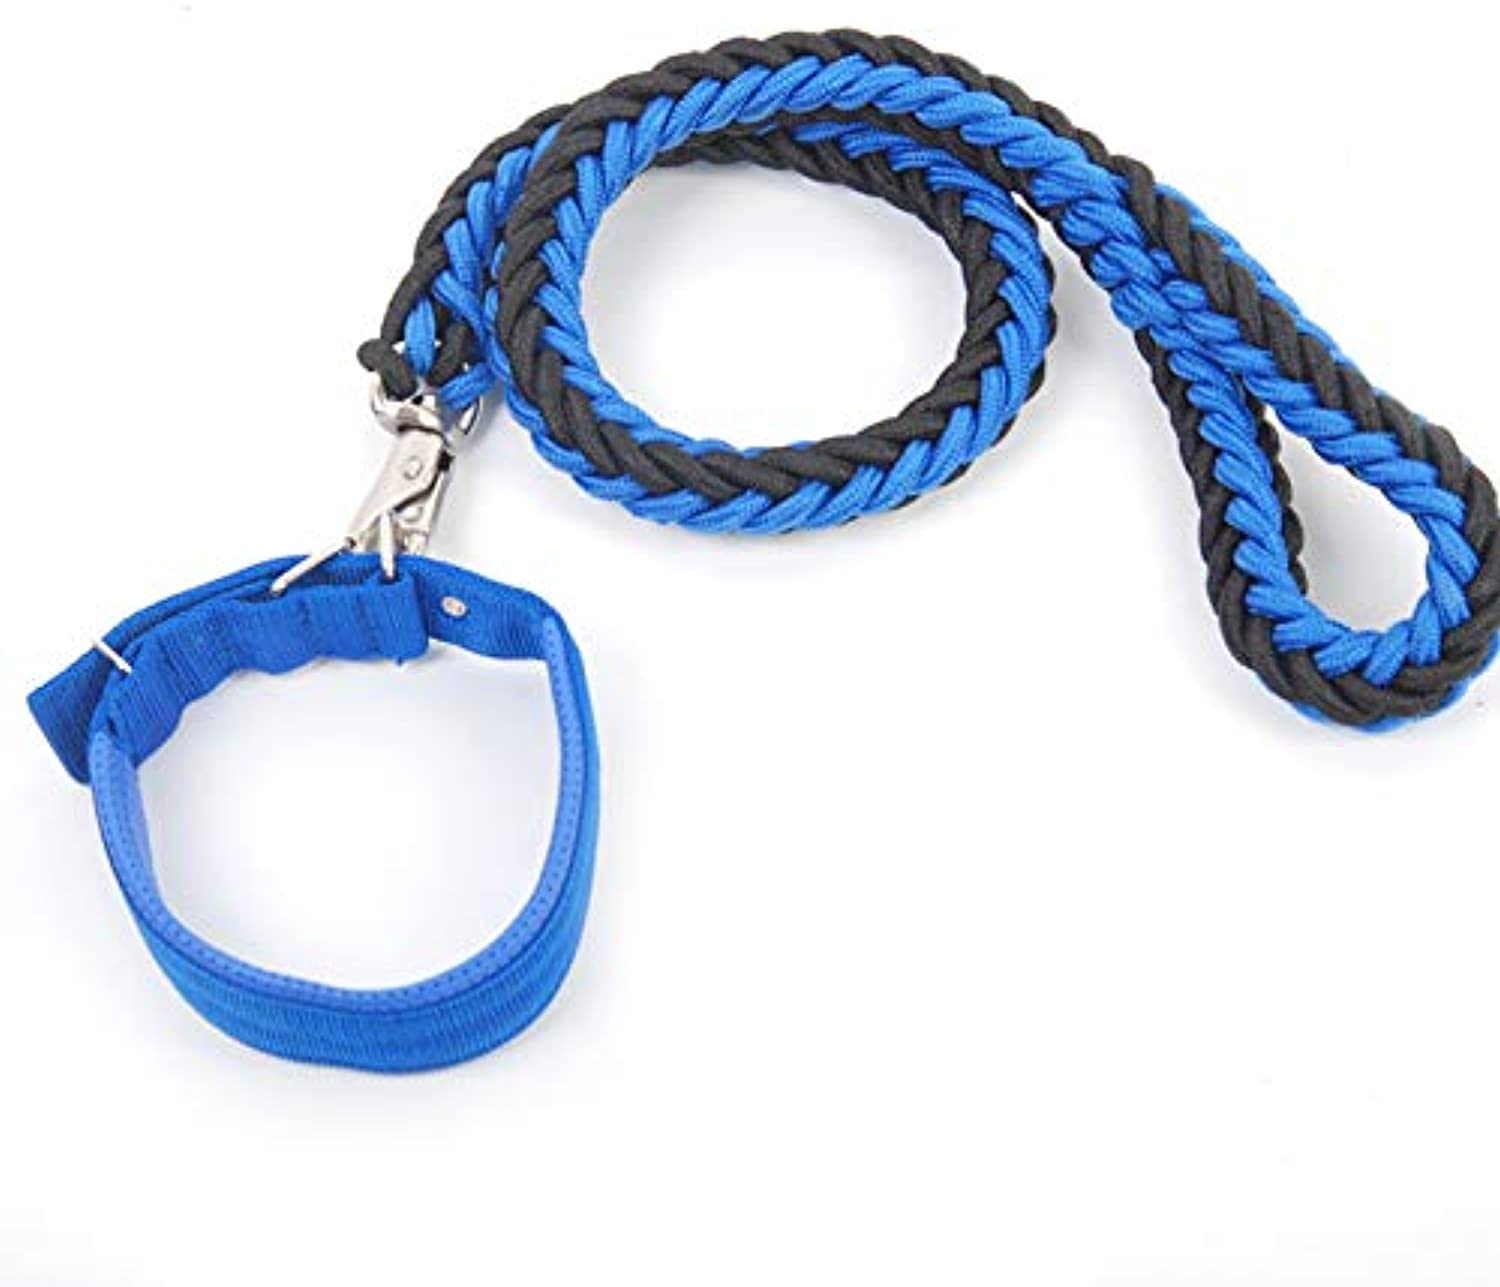 Dog Lead Rope,Pet Leash with Soft Padded Nylon Braided Strong Heavy Duty Dog Training Lead Leash for Large and Medium Dogs 1.2m 3.9ft (Size   S)